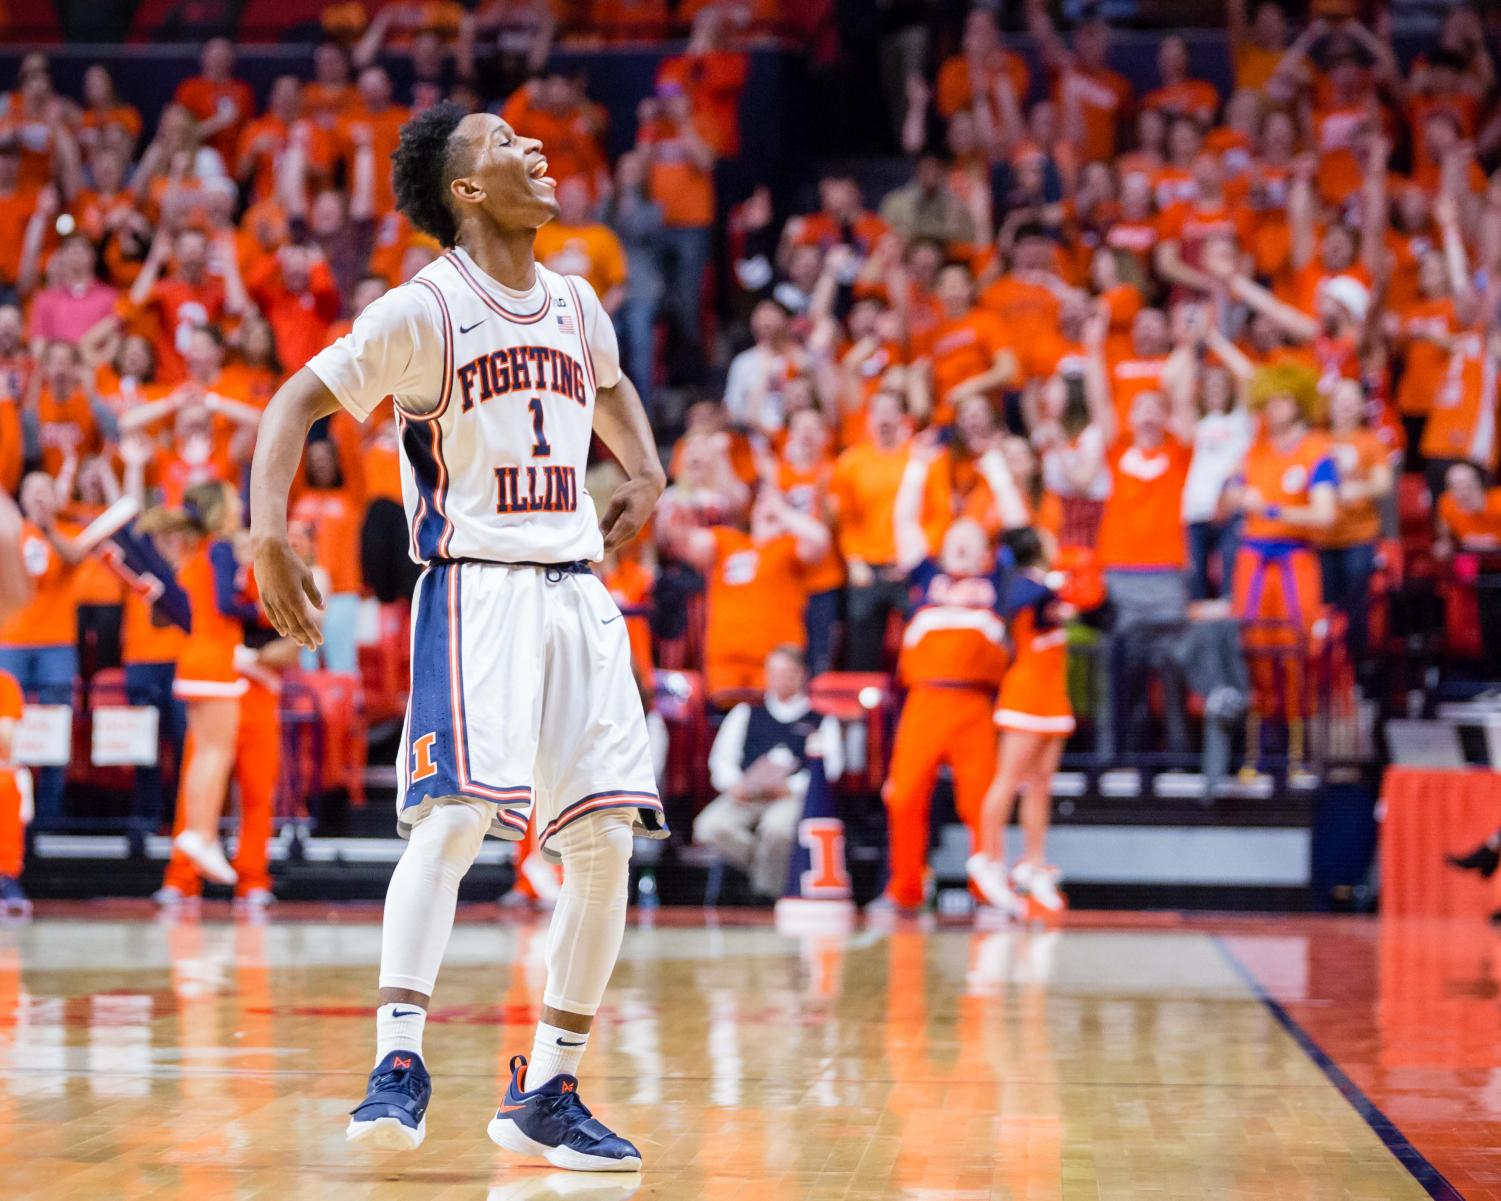 Illinois guard Trent Frazier  celebrates after hitting a three during the game against Purdue at the State Farm Center on Thursday, Feb. 22. The Illini lost 93-86.